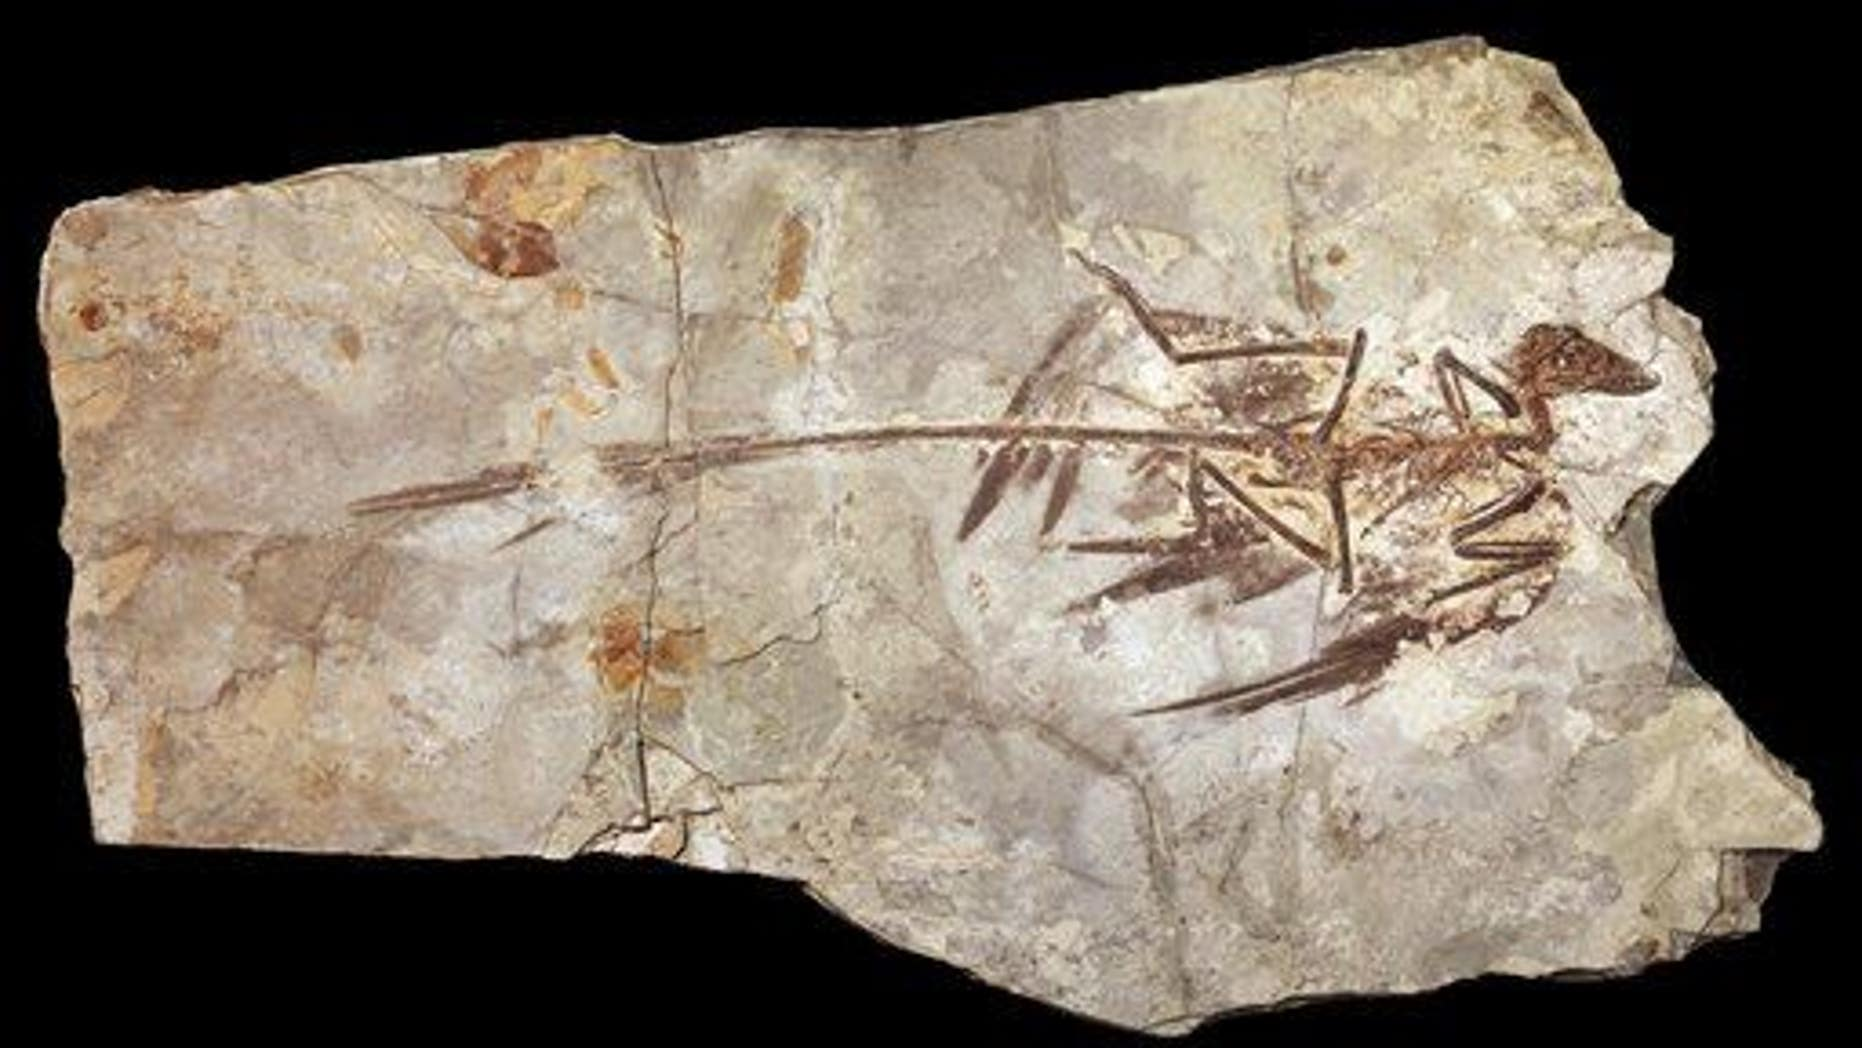 This undated handout illustration provided by the American Museum of Natural History shows a Microraptor, based on a fossil from 130 million years ago found in China.